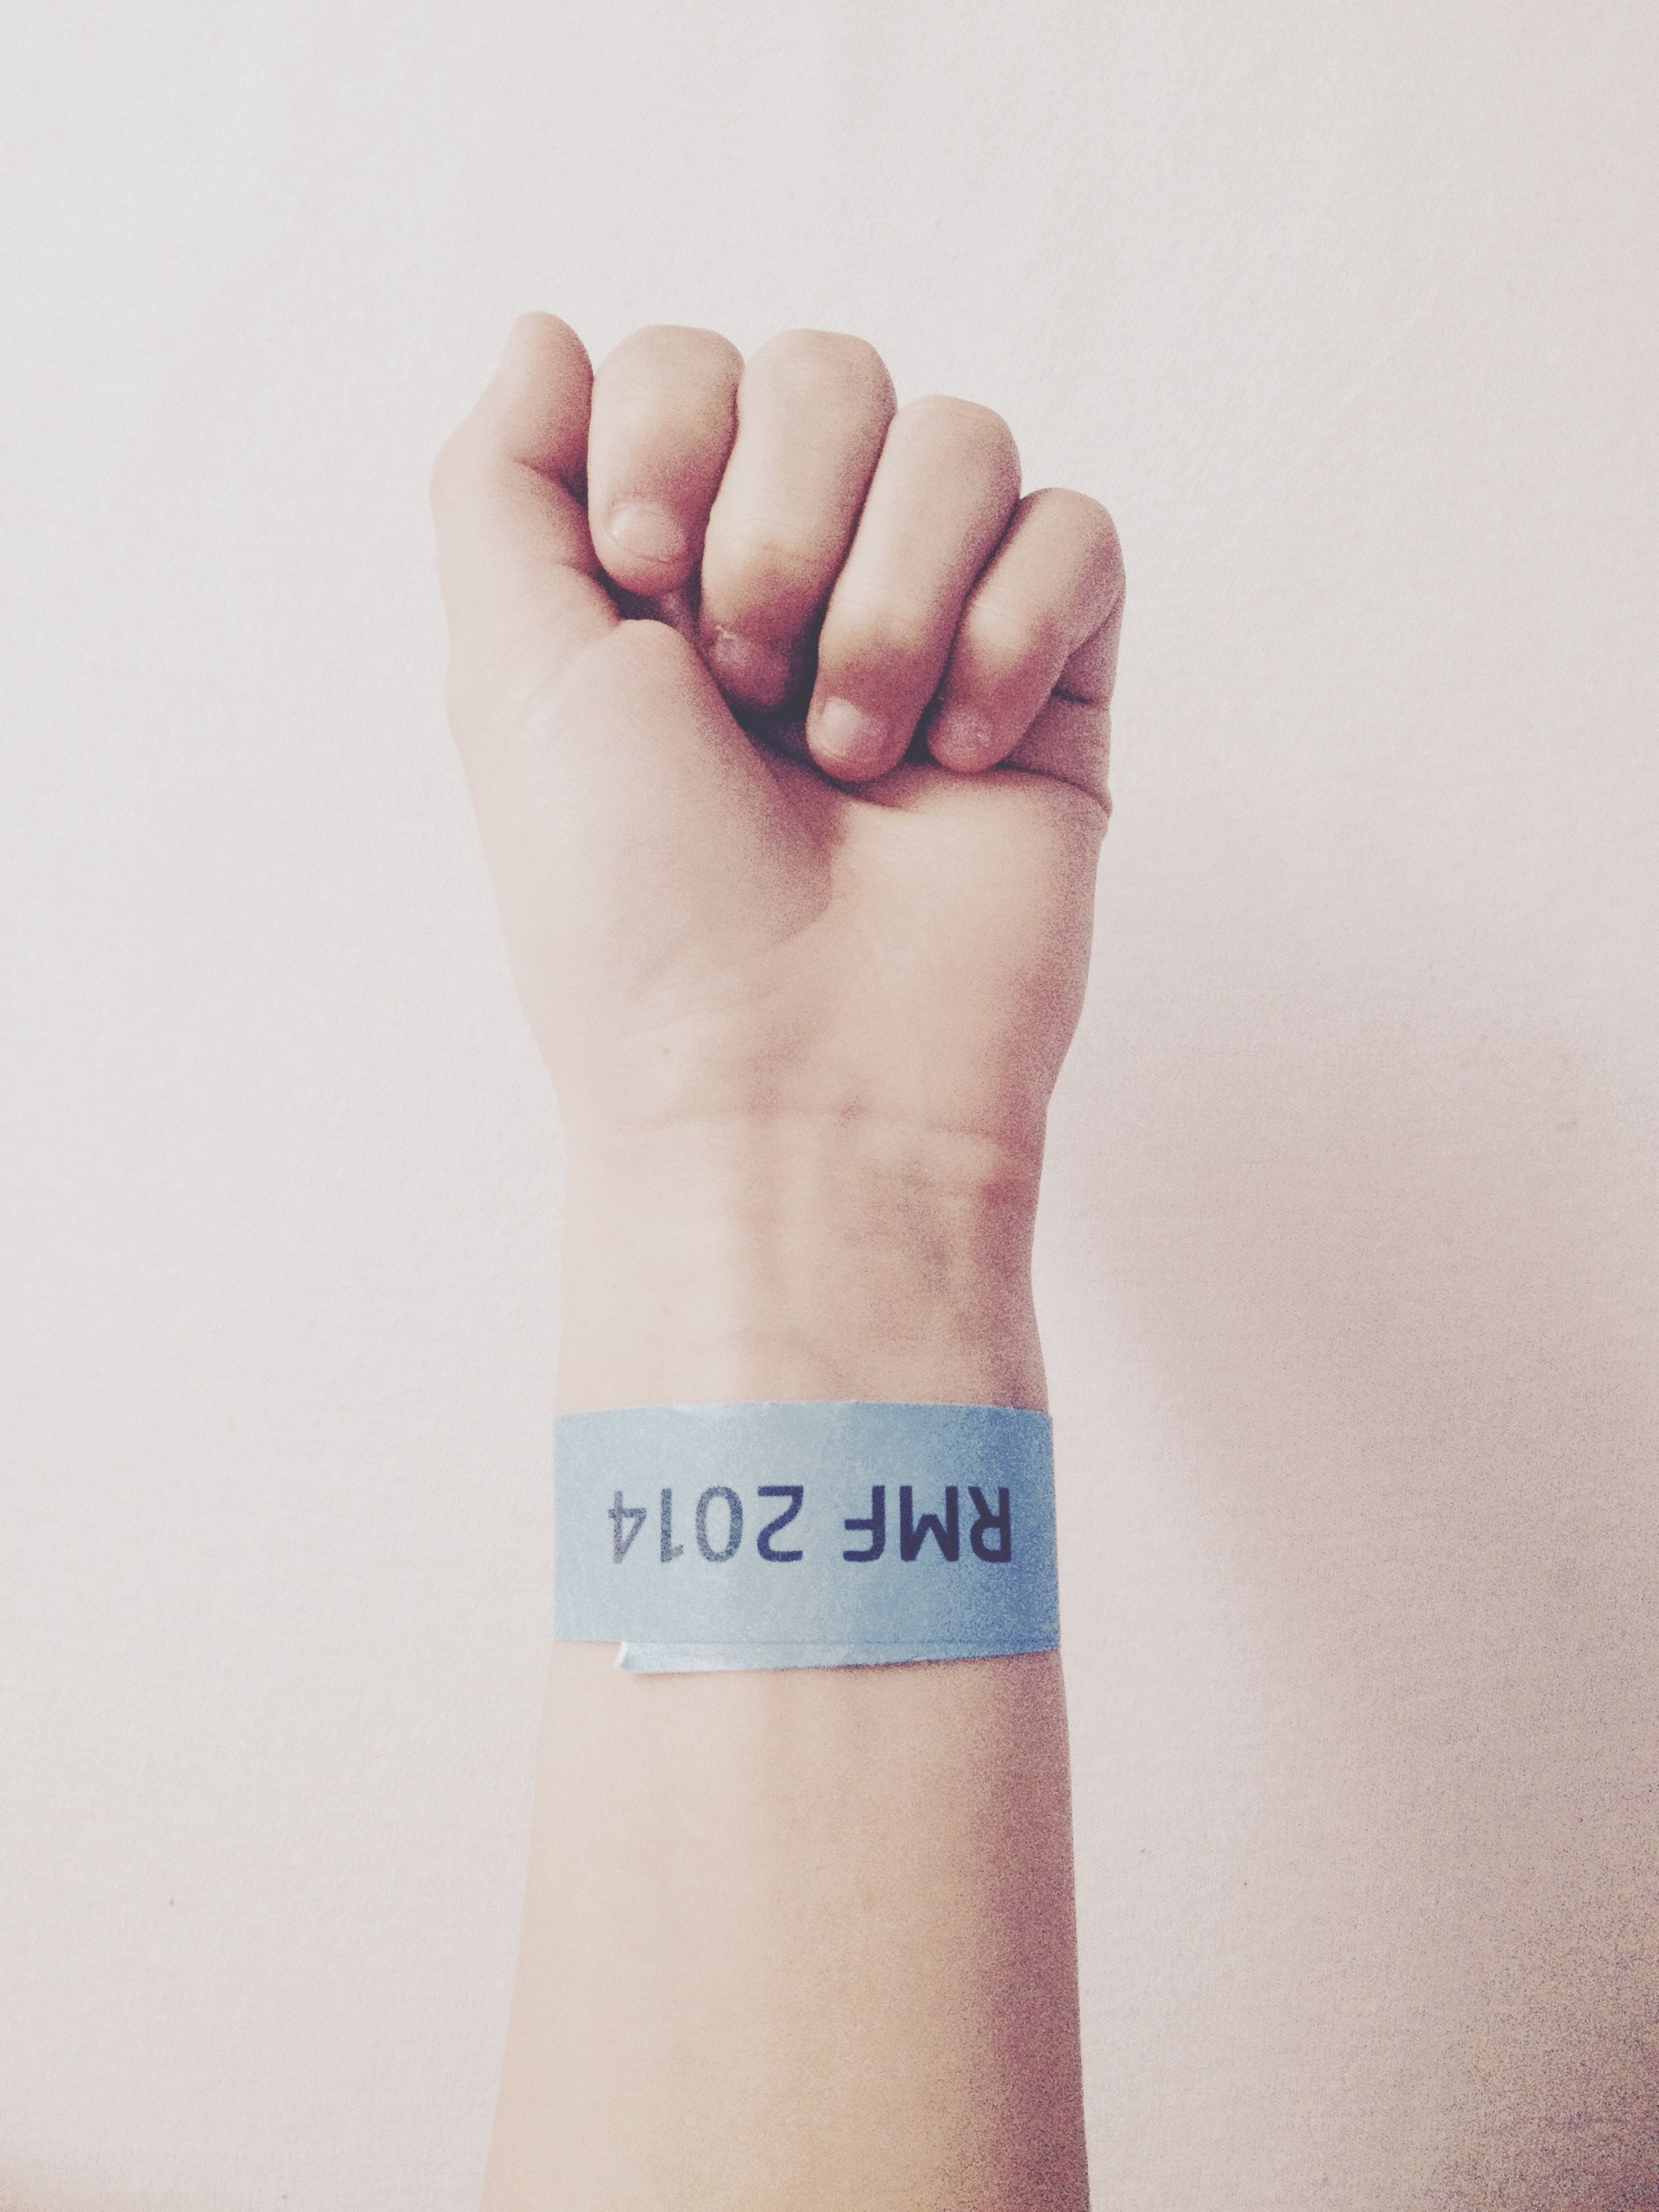 person, part of, indoors, human finger, cropped, white background, studio shot, close-up, communication, text, holding, western script, wall - building feature, copy space, lifestyles, personal perspective